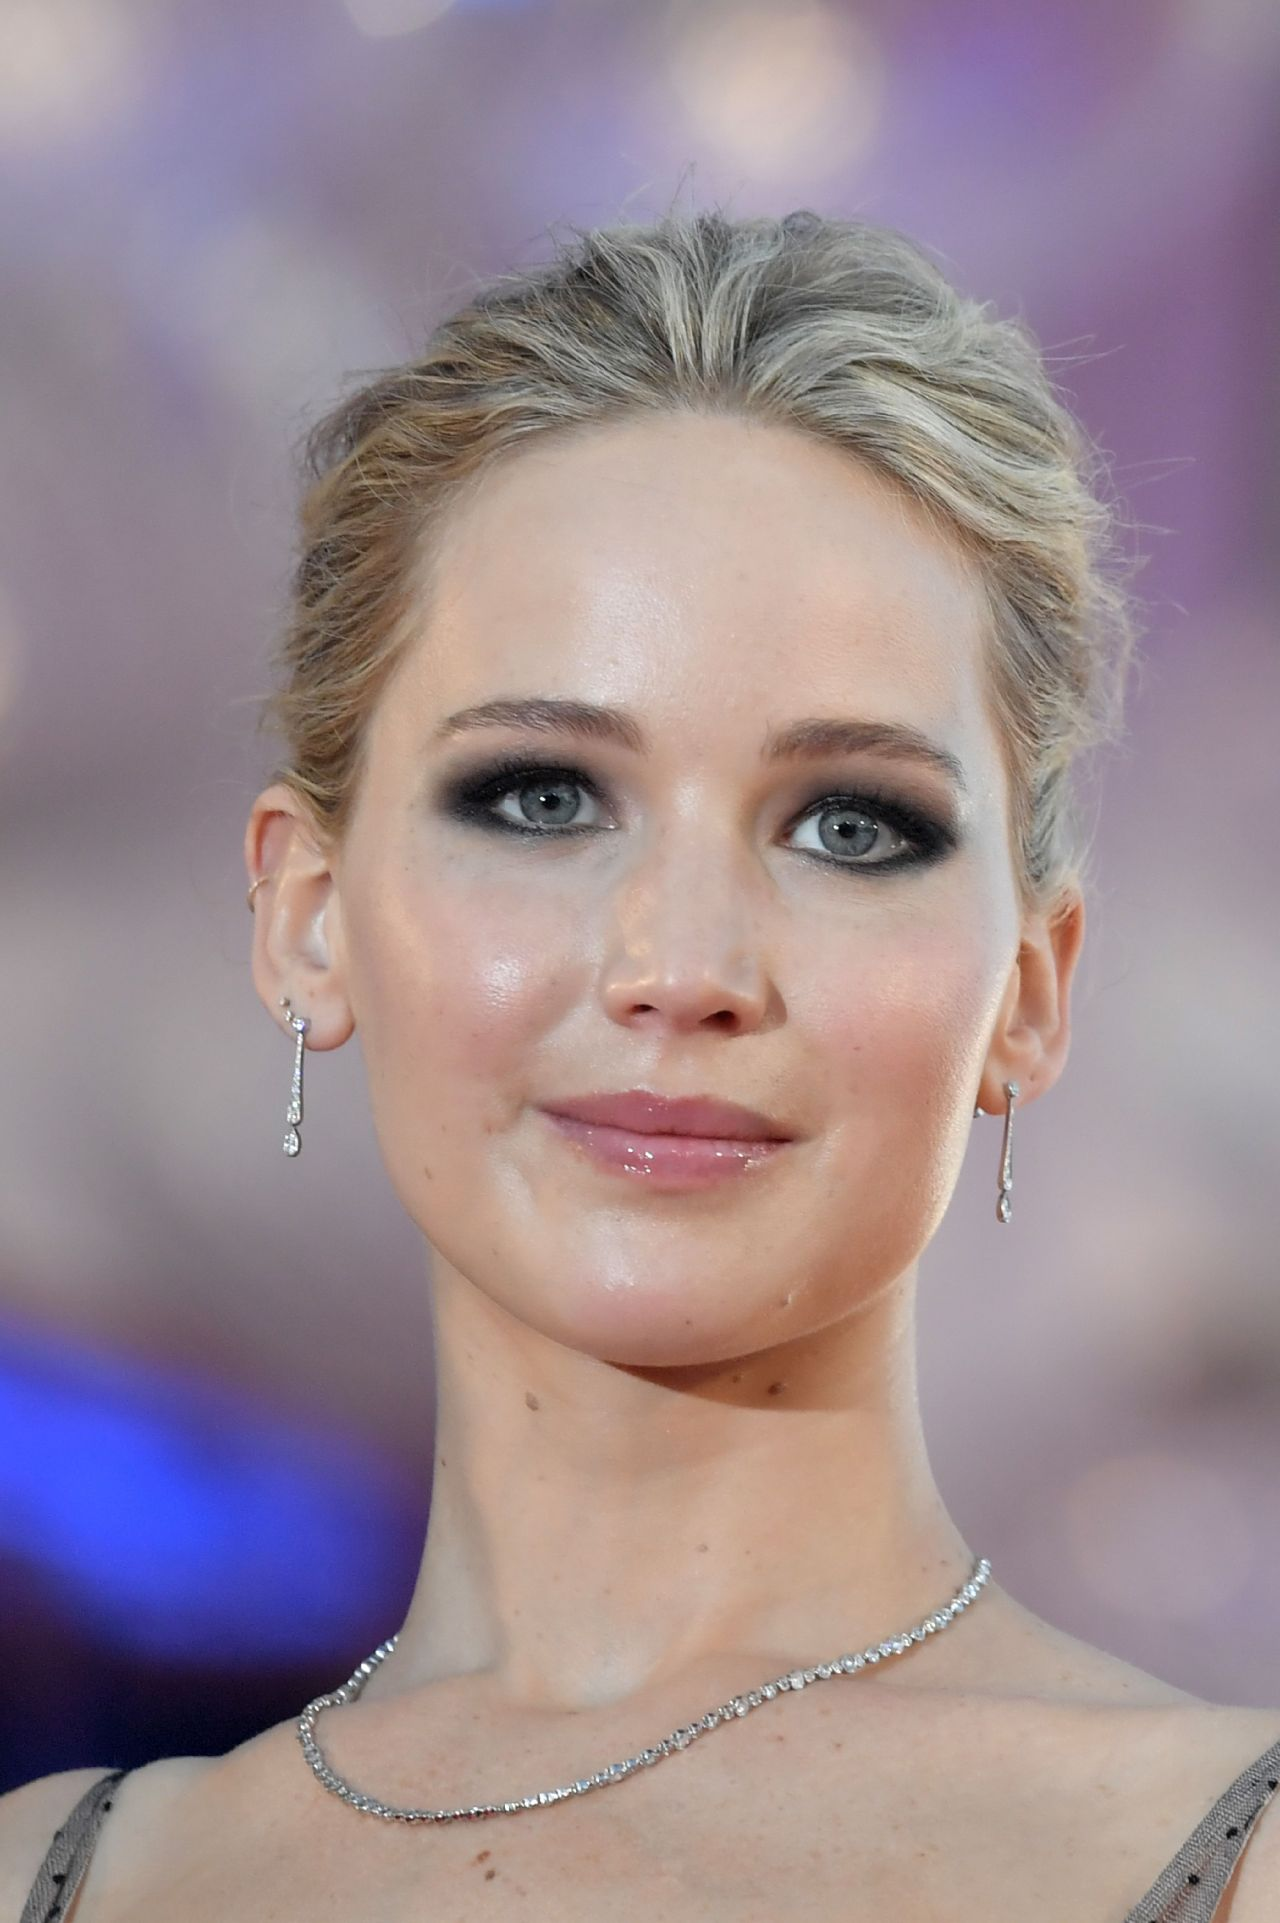 Woman spends $25,000 on surgery to look like Jennifer Lawrence